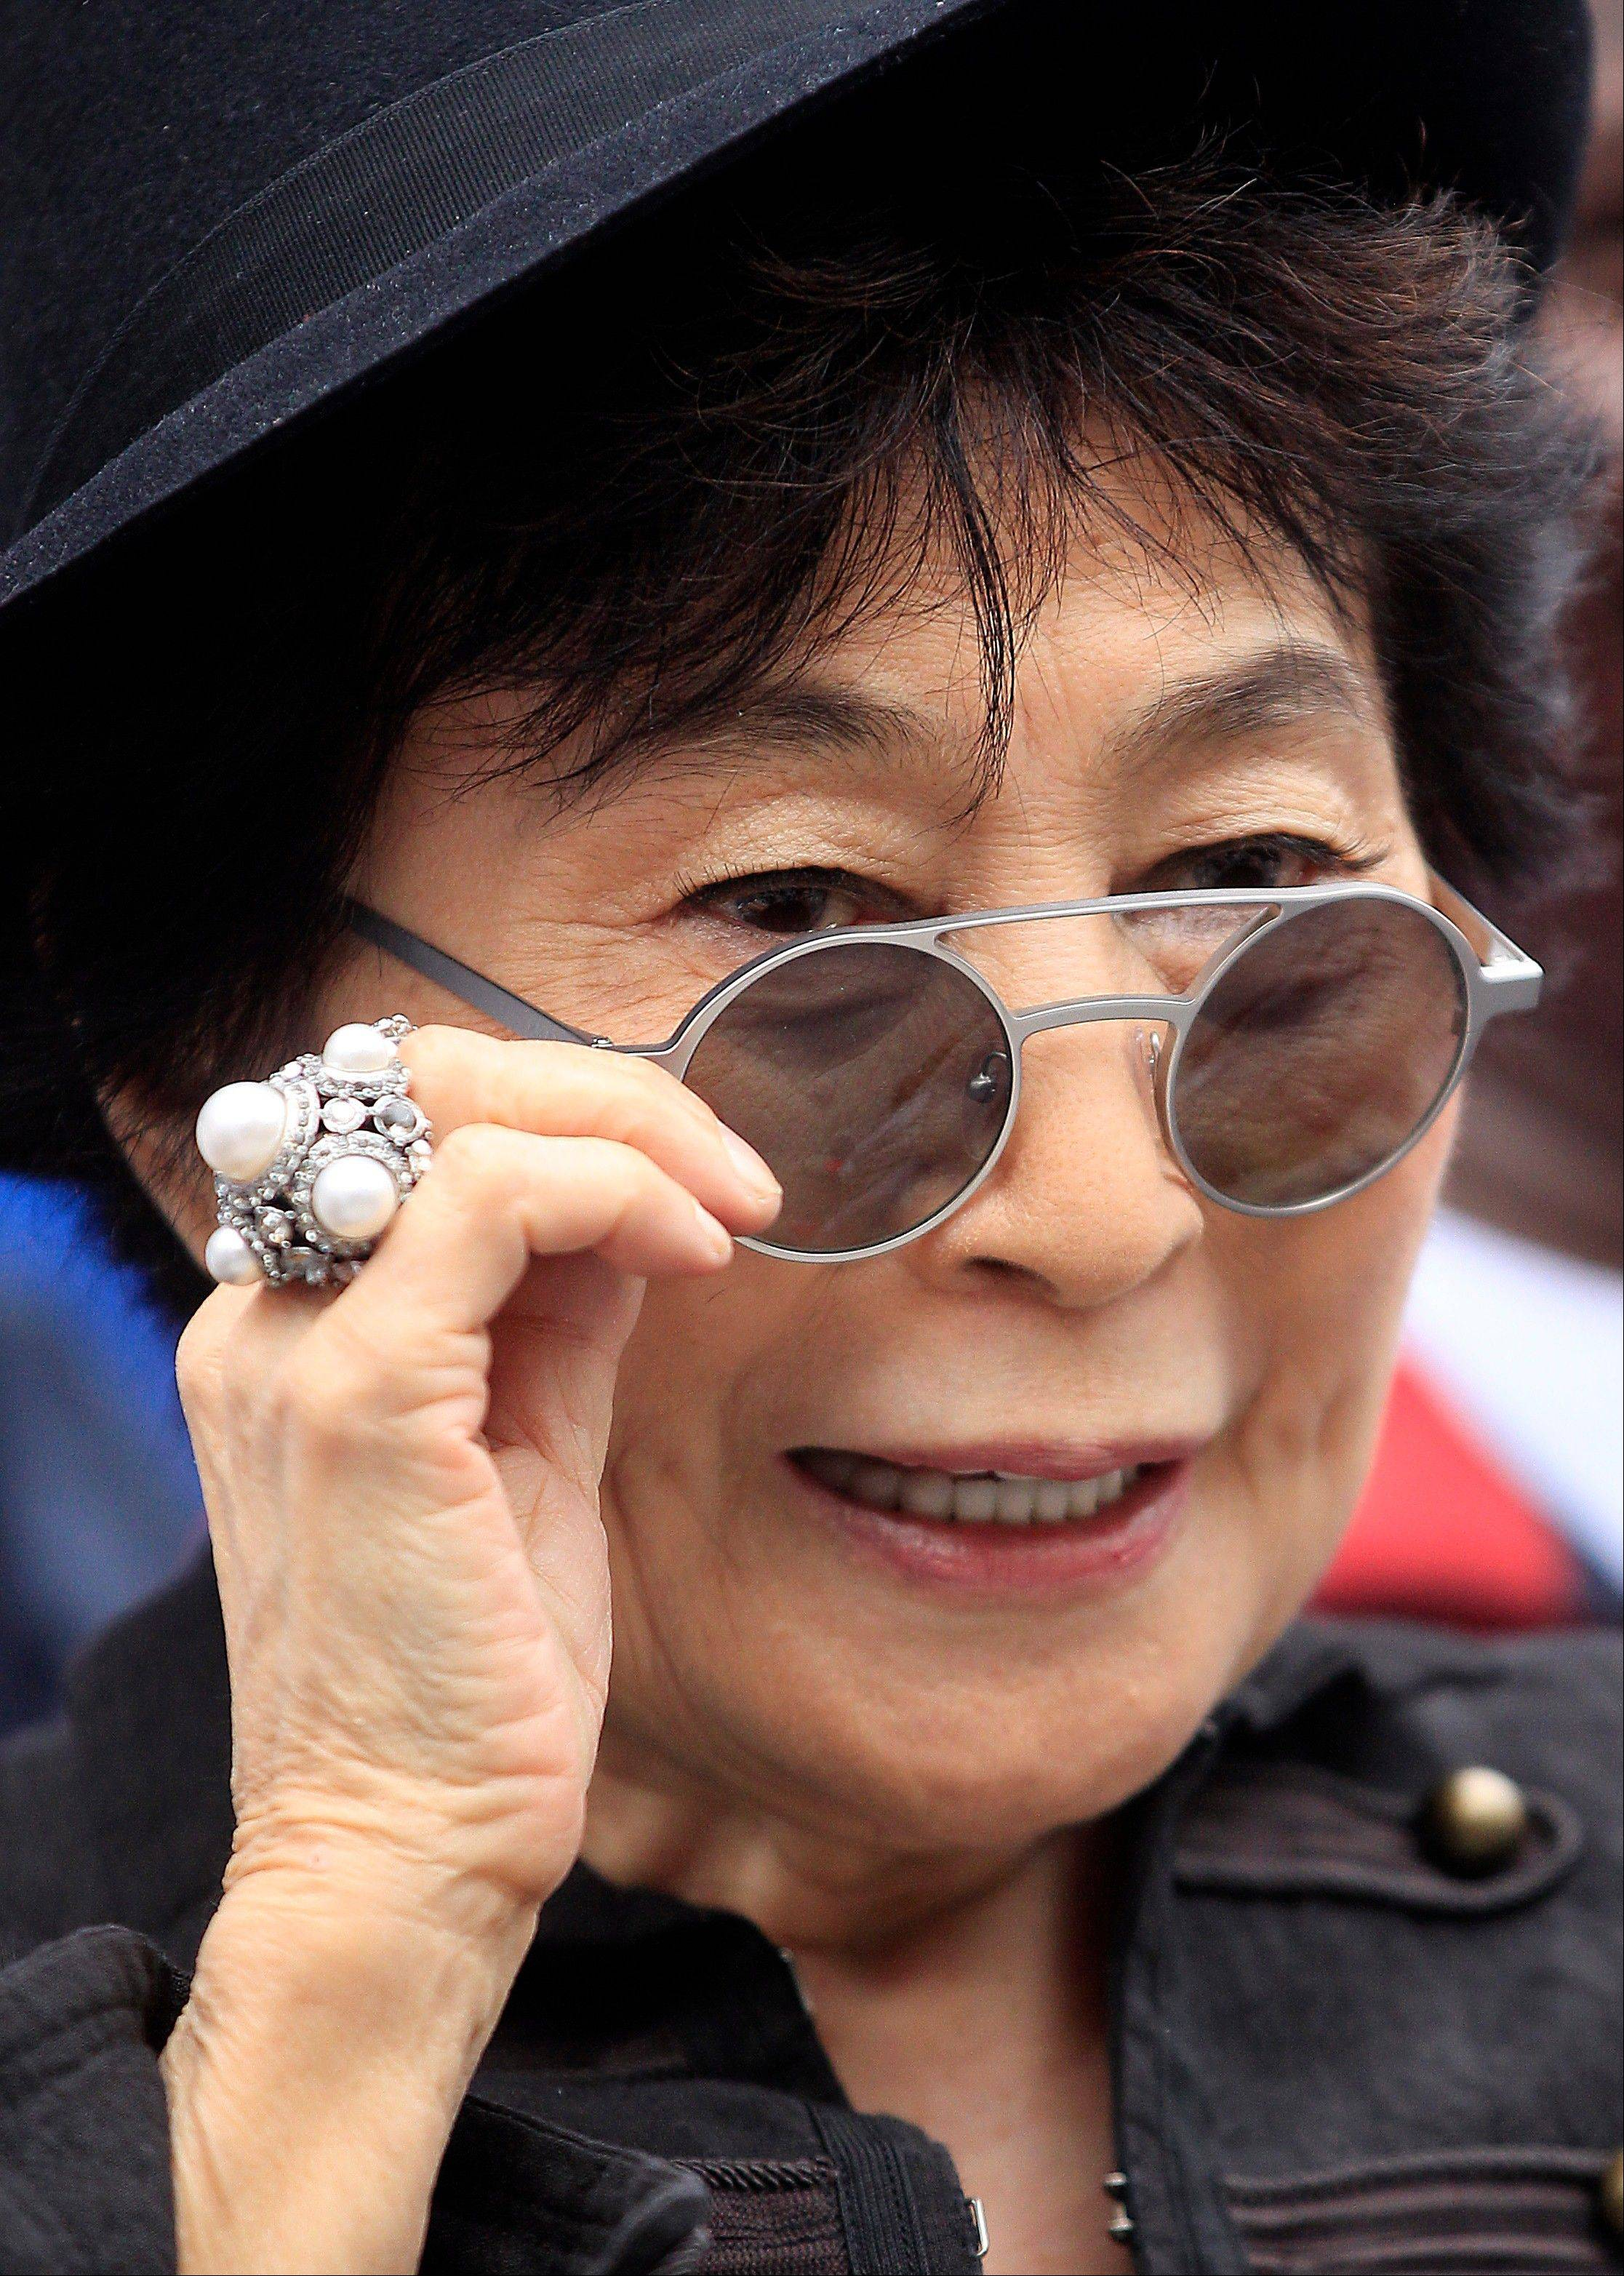 Yoko Ono says she's thankful that Paul McCartney appears to have gotten over his grudge against her.